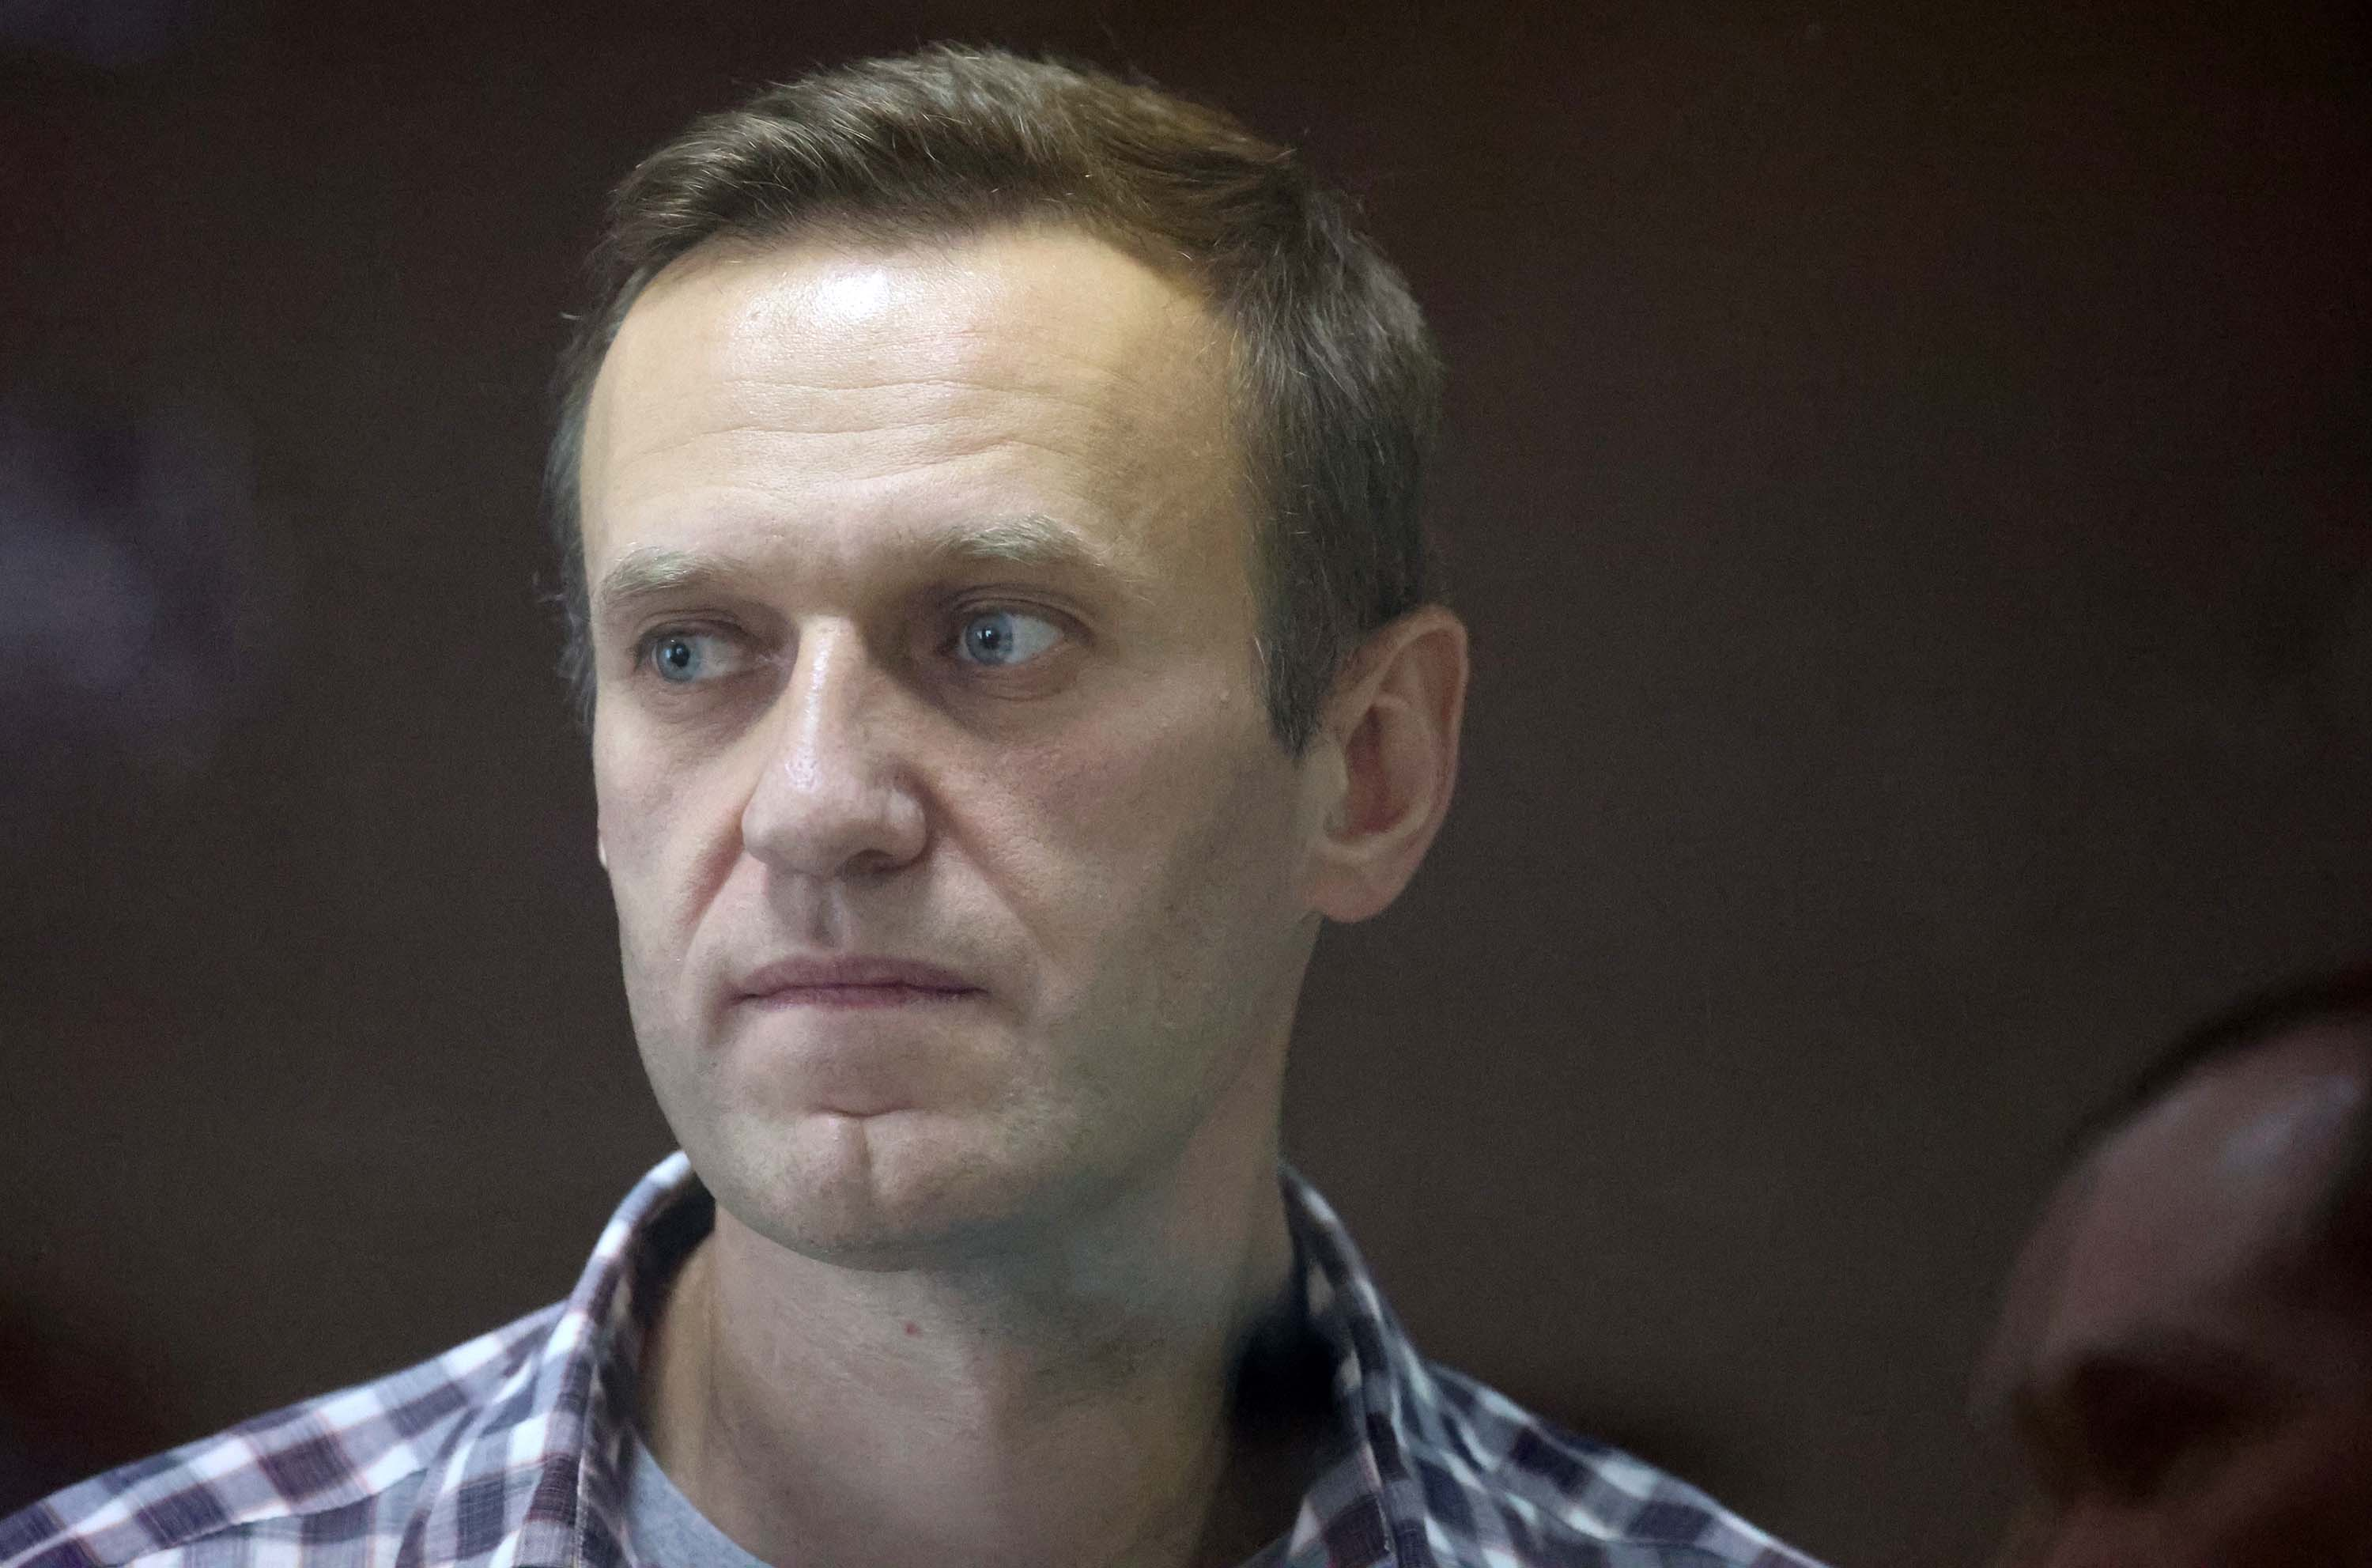 Campaigners call for US to do more to hold Putin accountable as Navalny's health deteriorates